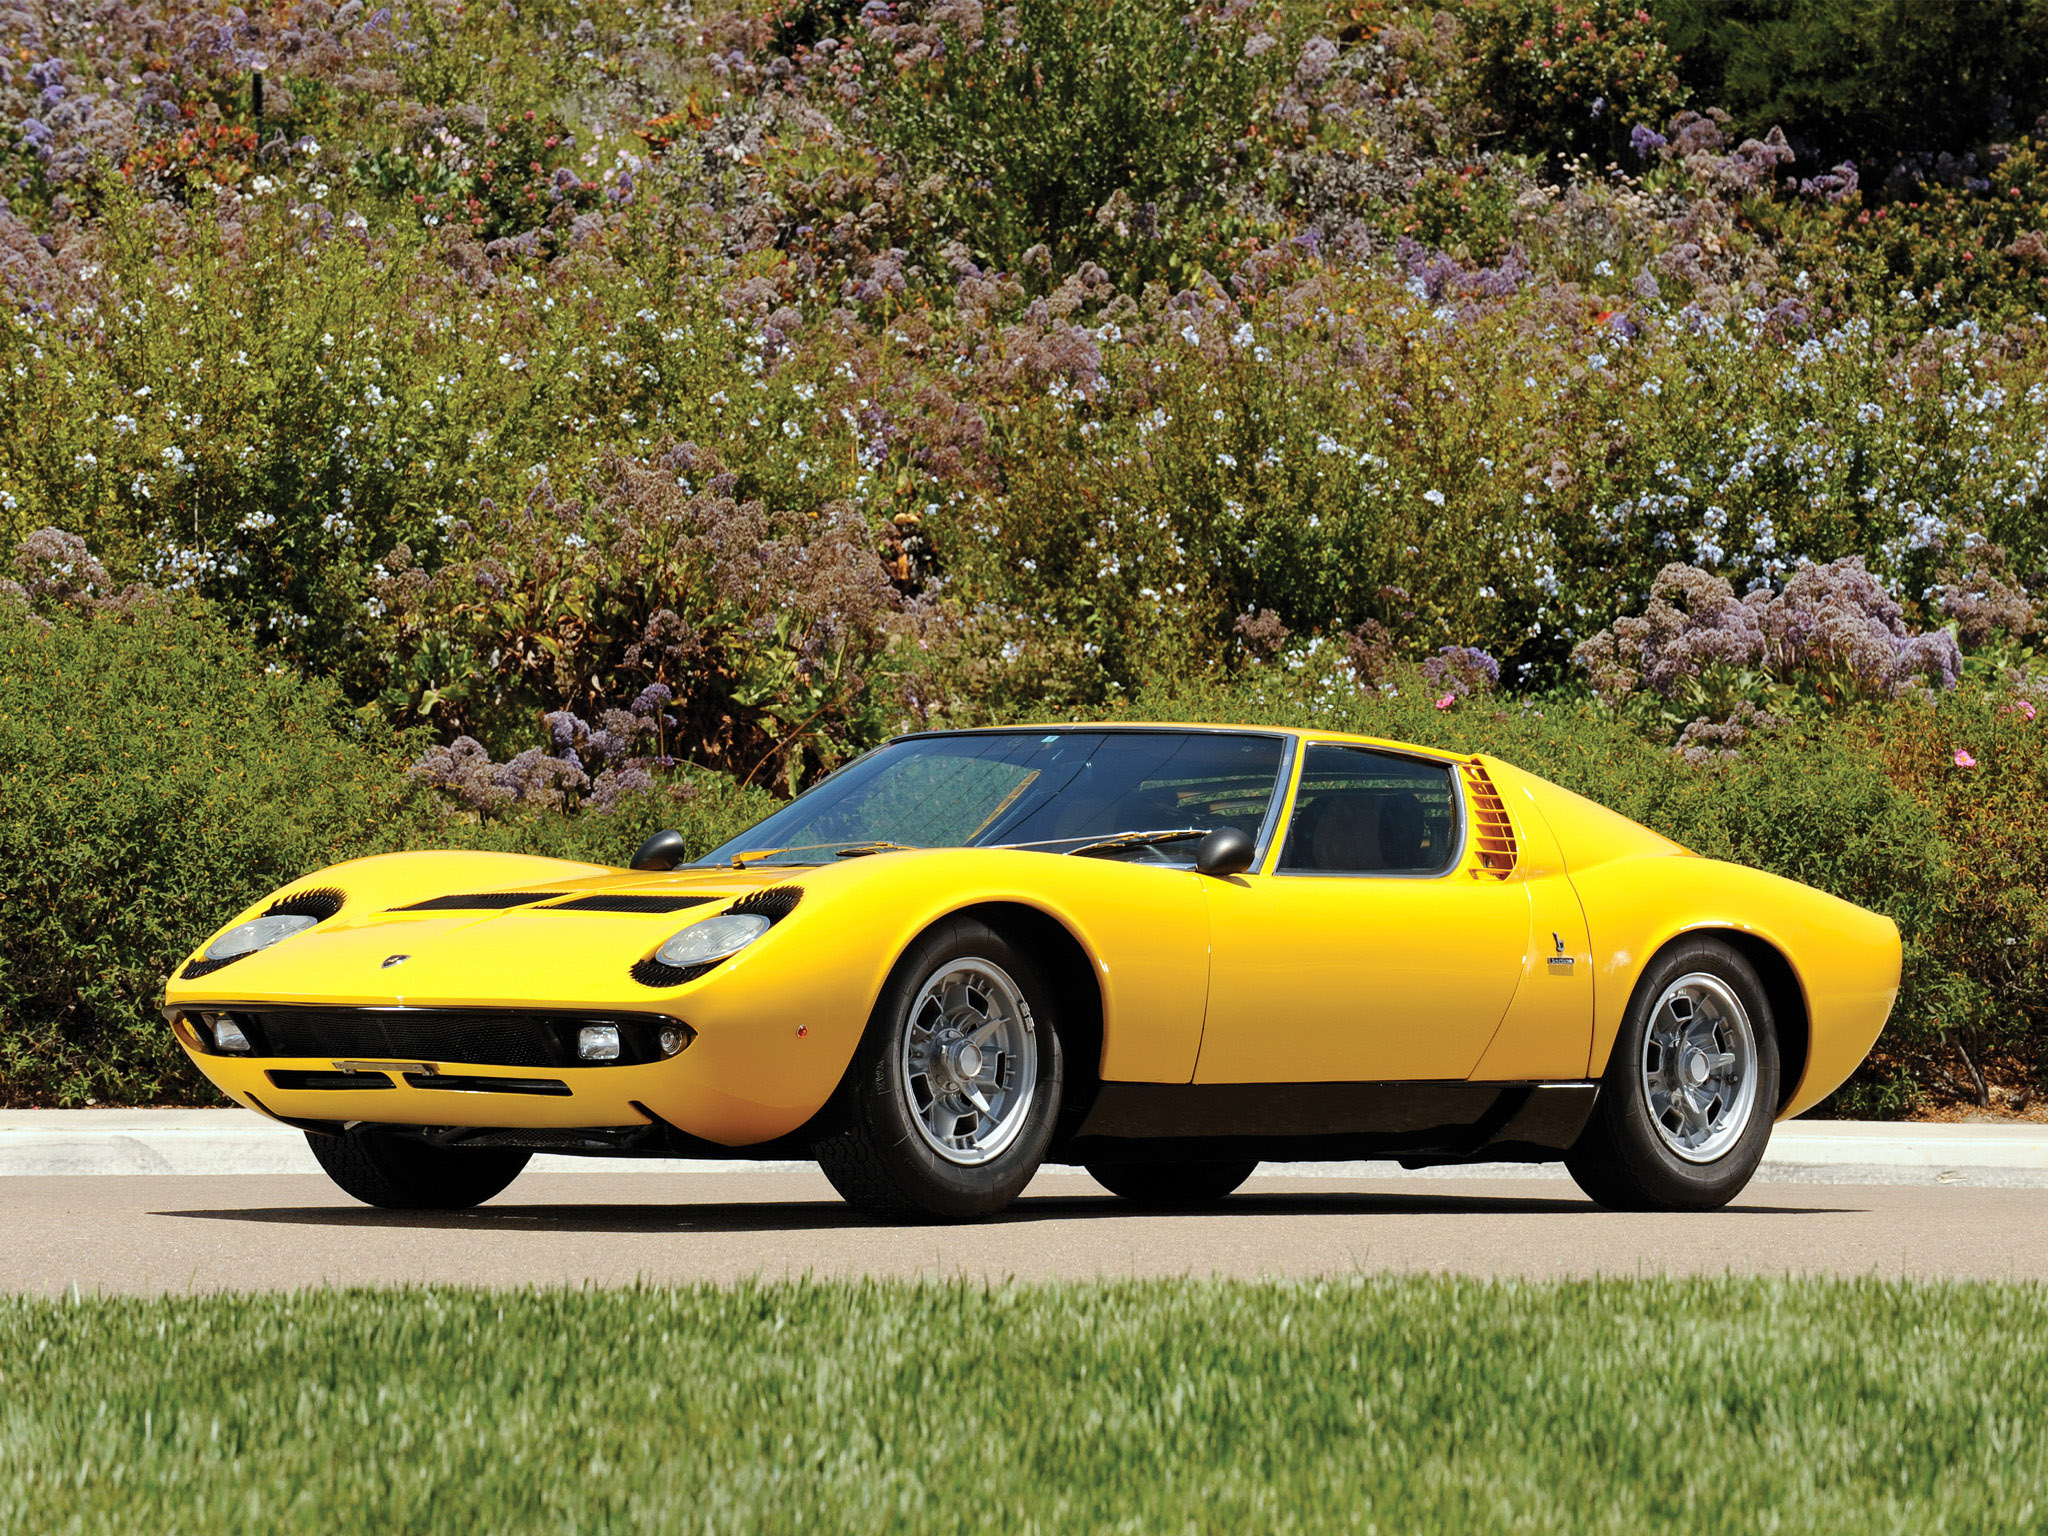 lamborghini miura p 400 s picture 4 reviews news specs buy car. Black Bedroom Furniture Sets. Home Design Ideas